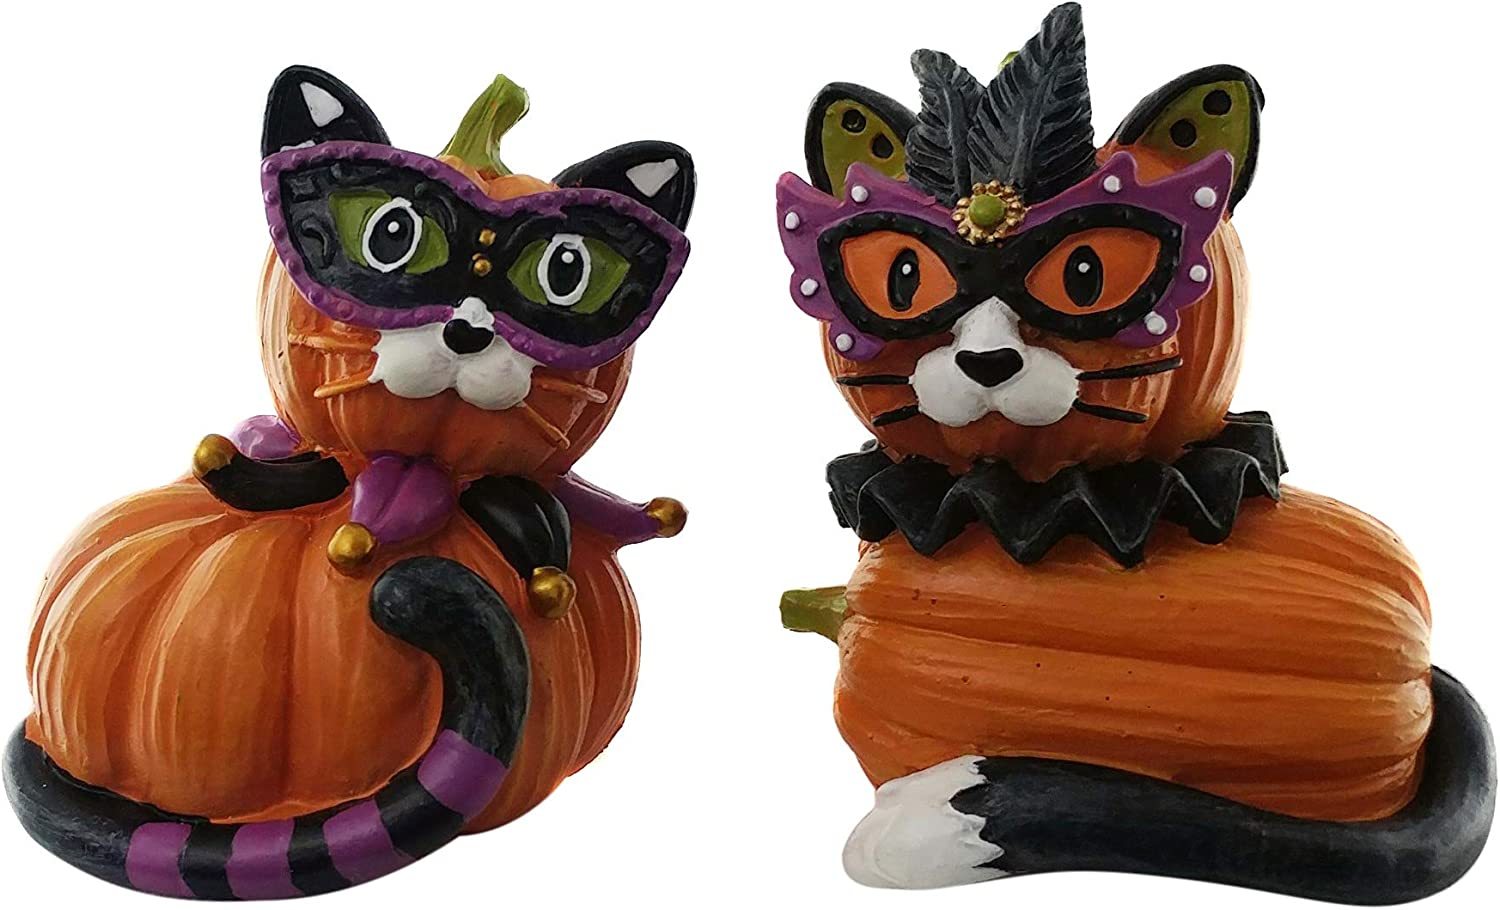 Cat Queen and Joker Party Decorations Co Clearance SALE! Limited time! Ranking TOP11 Halloween Pumpkin